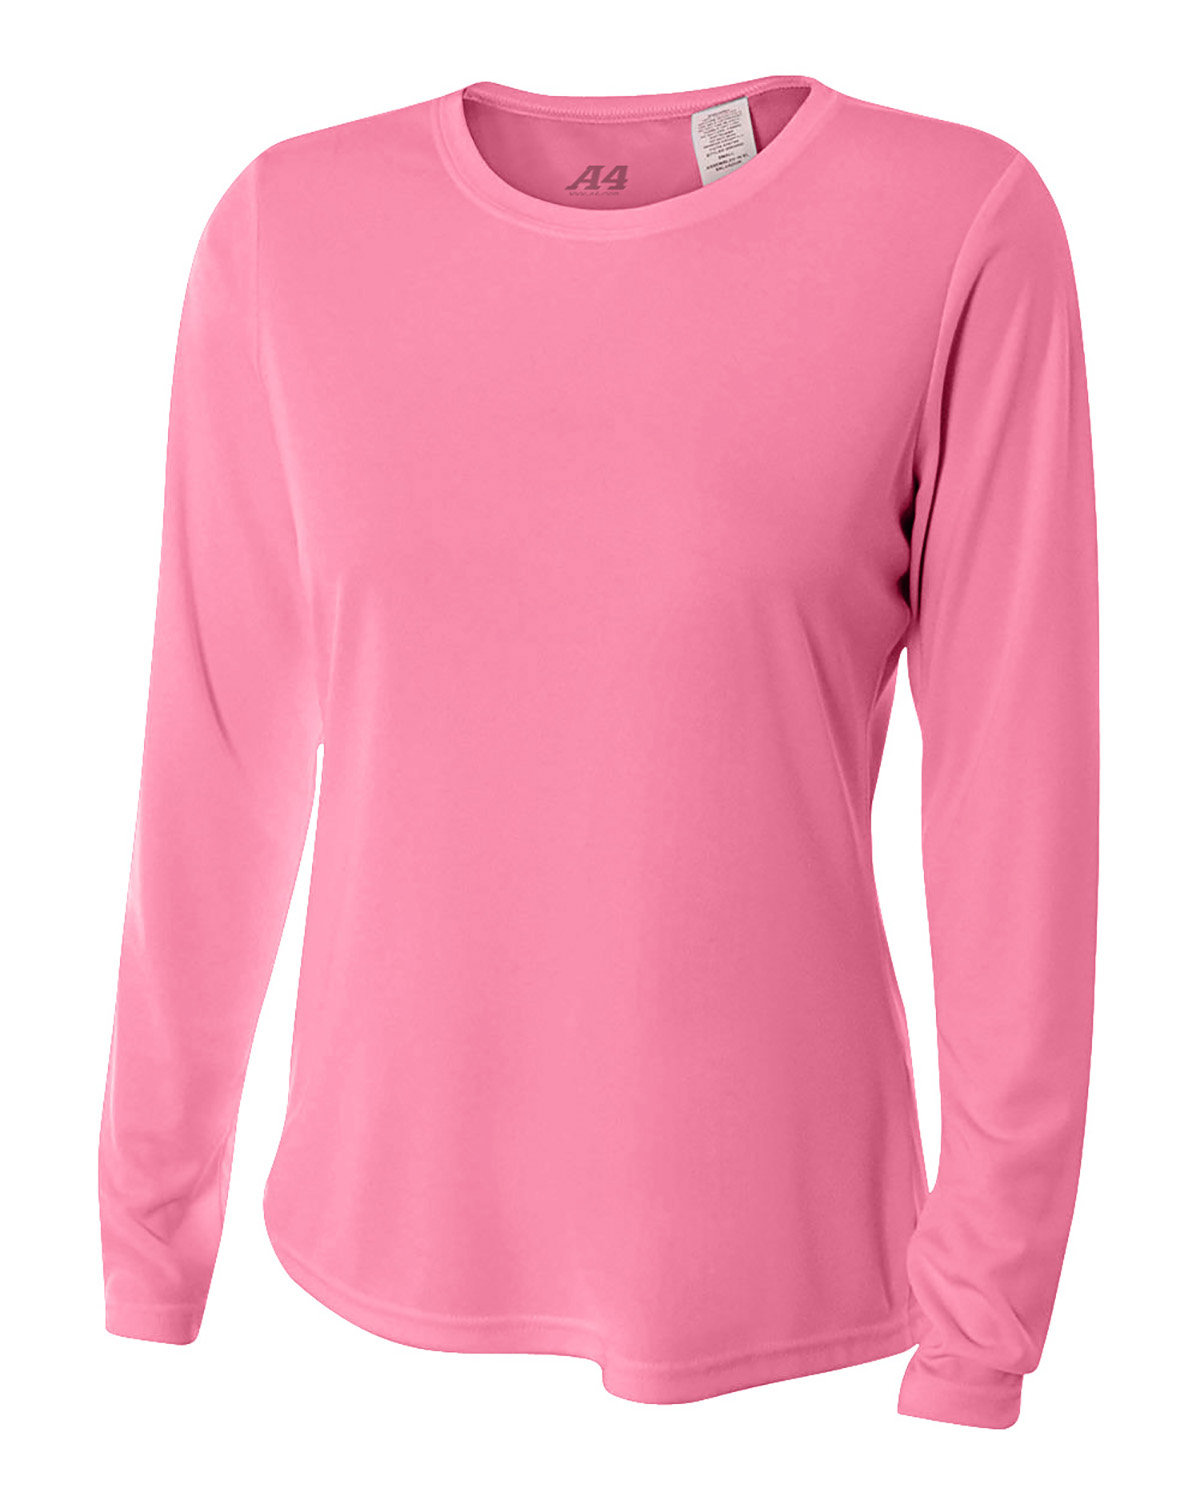 A4 Ladies' Long Sleeve Cooling Performance Crew Shirt PINK